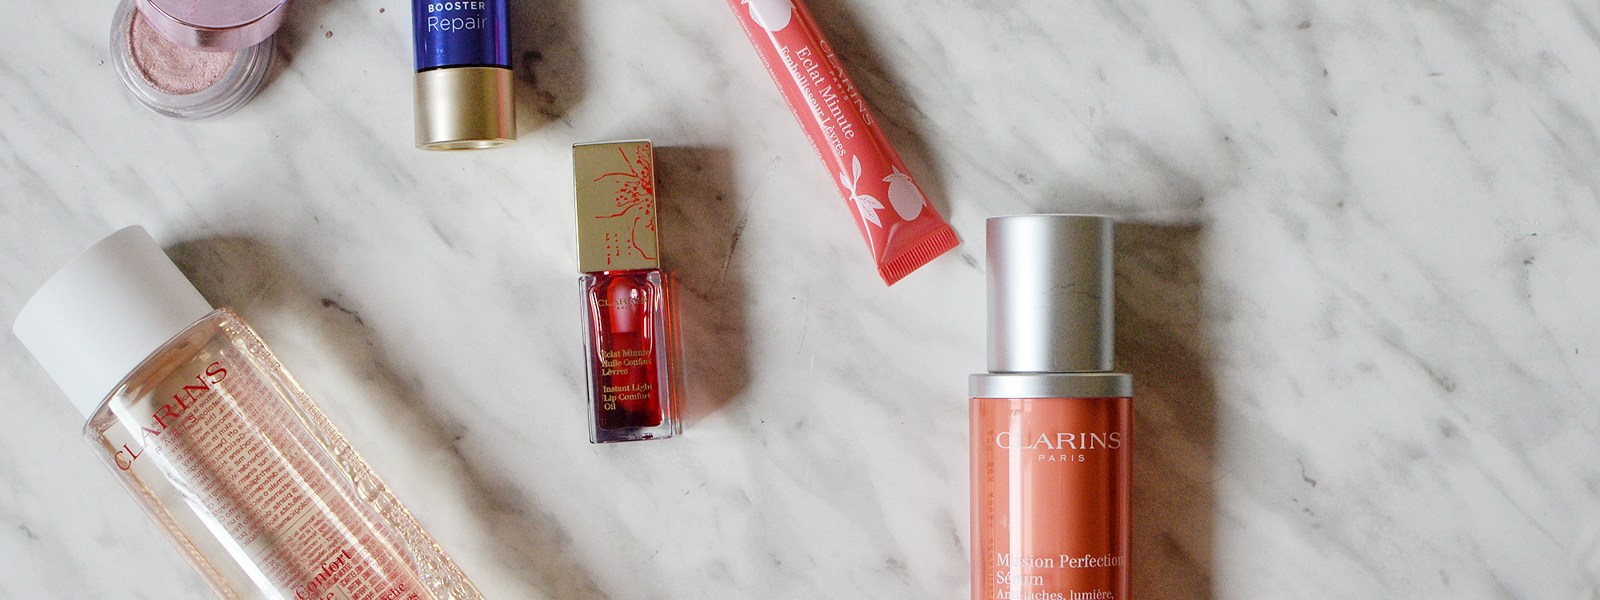 Best of Clarins Skincare and Beauty.